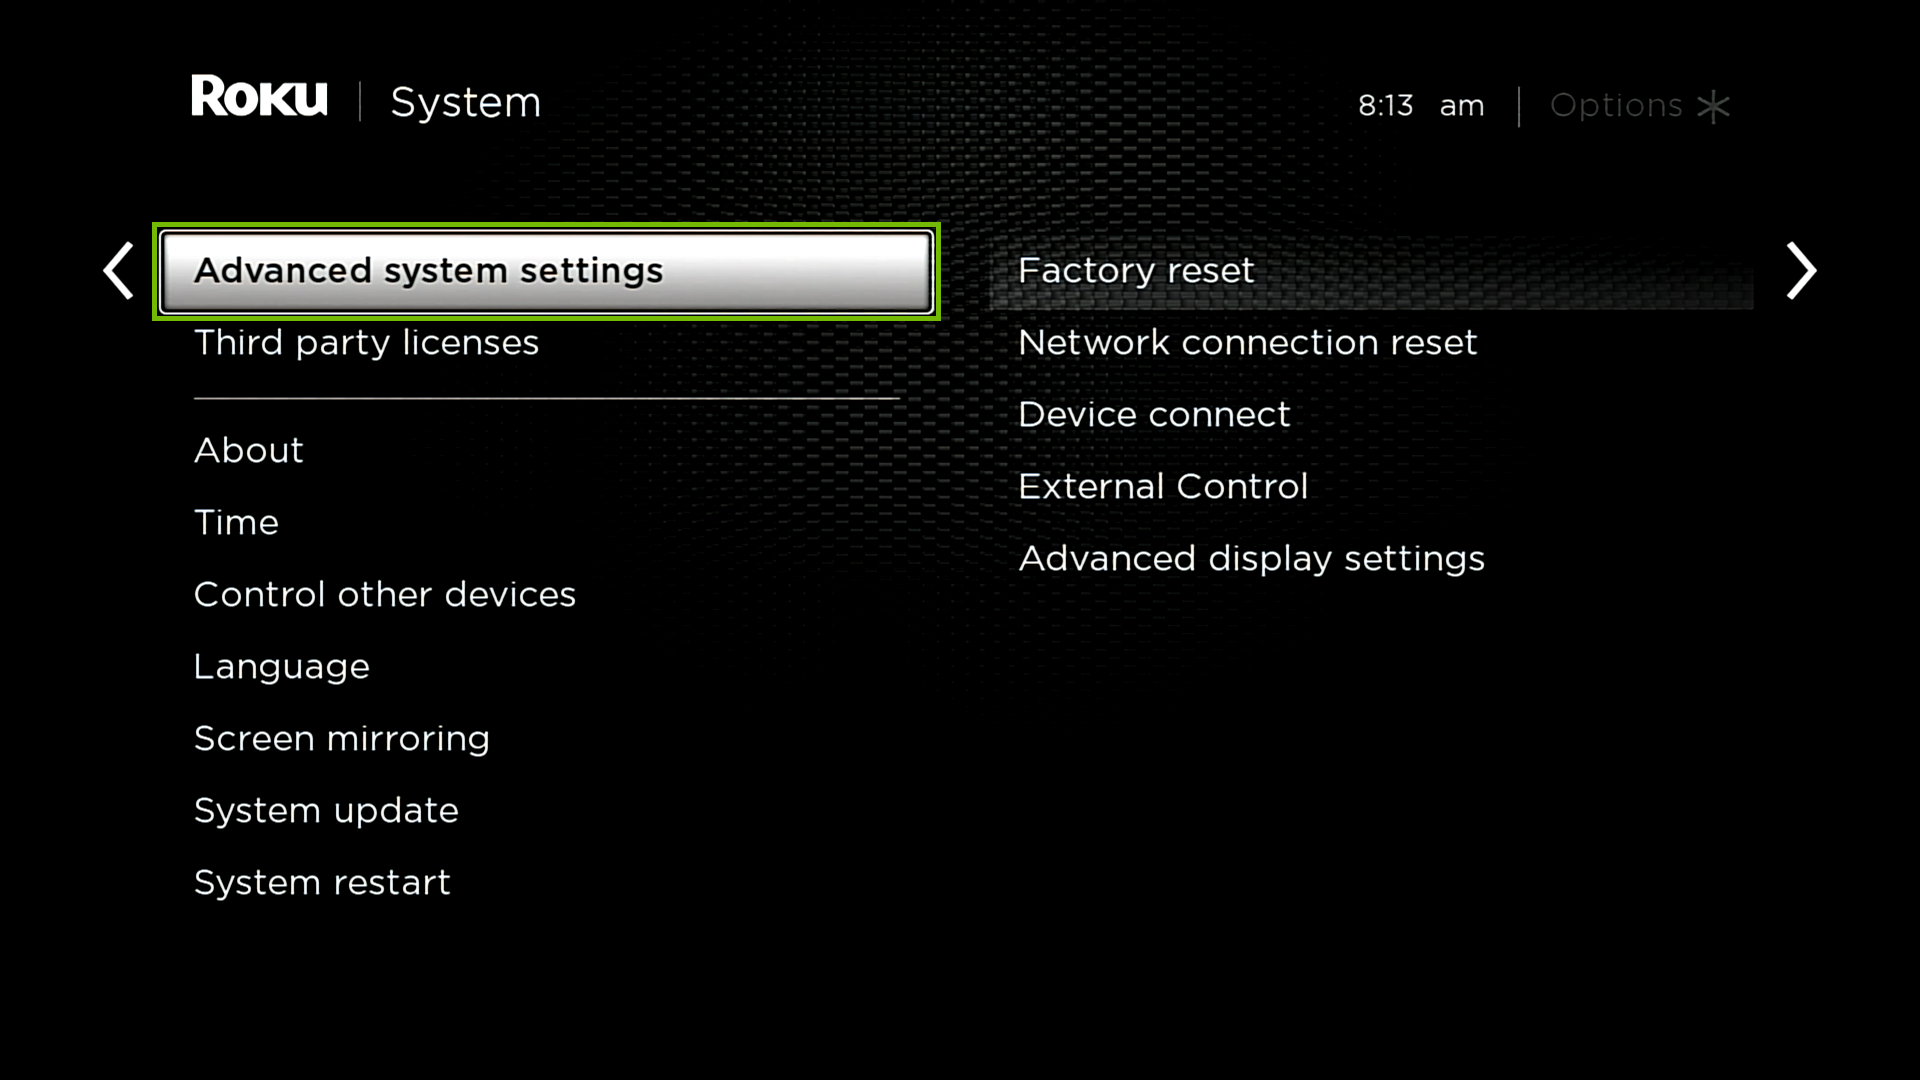 System with Advanced system settings highlighted.